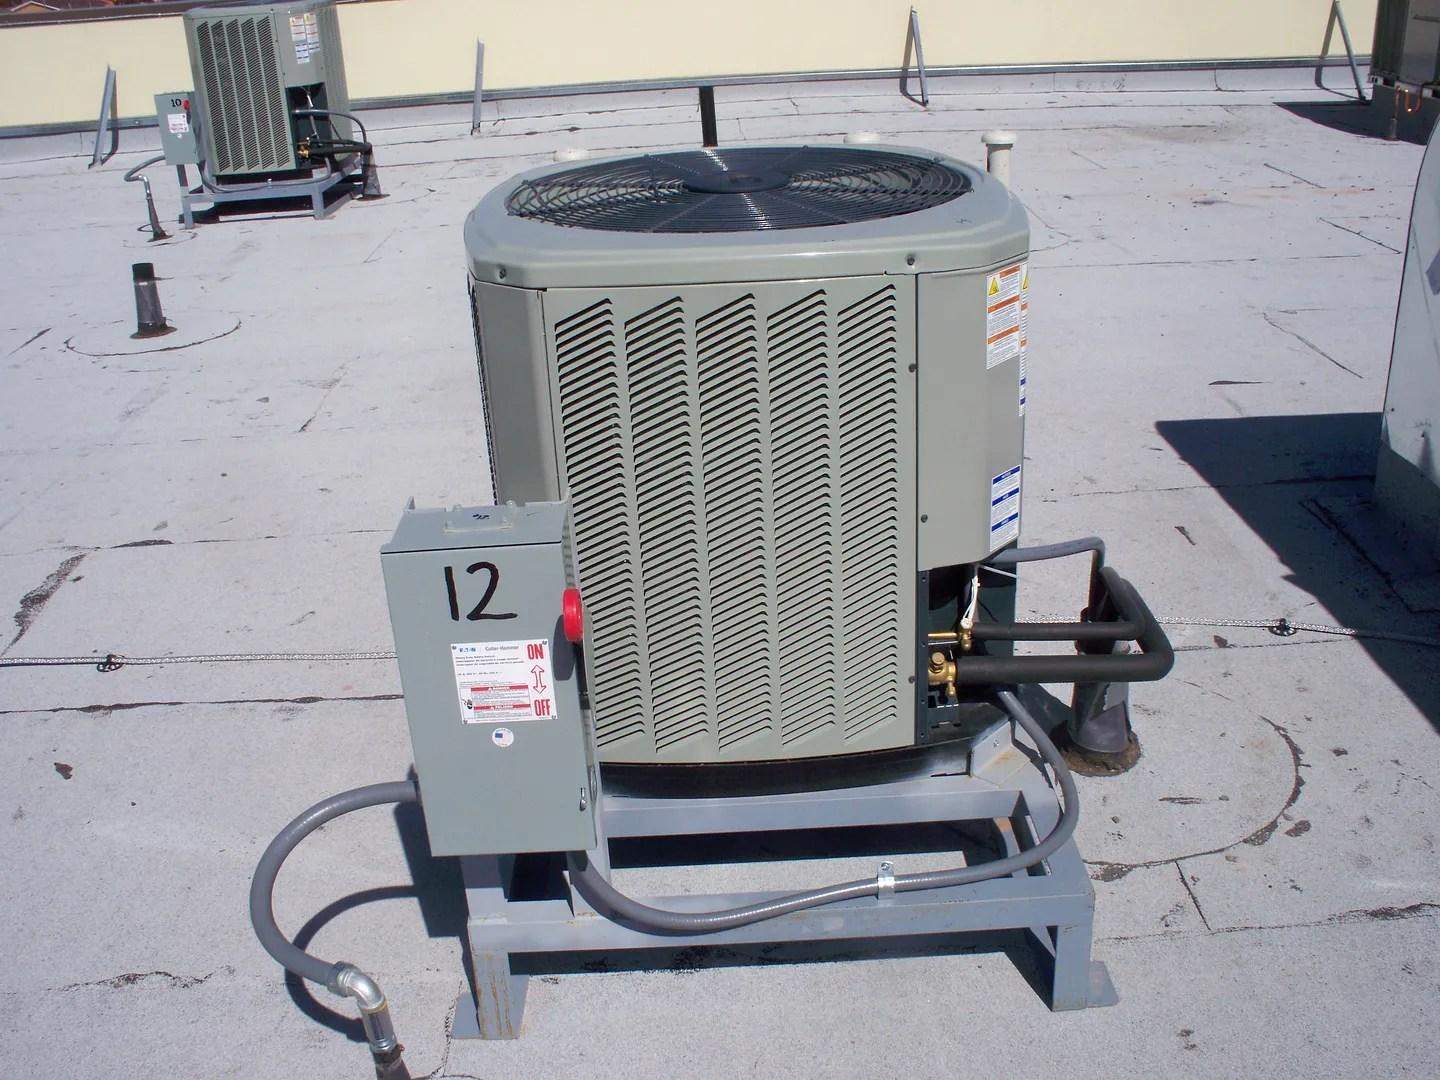 The Right Way To Put A Condenser On A Flat Targravel Roof